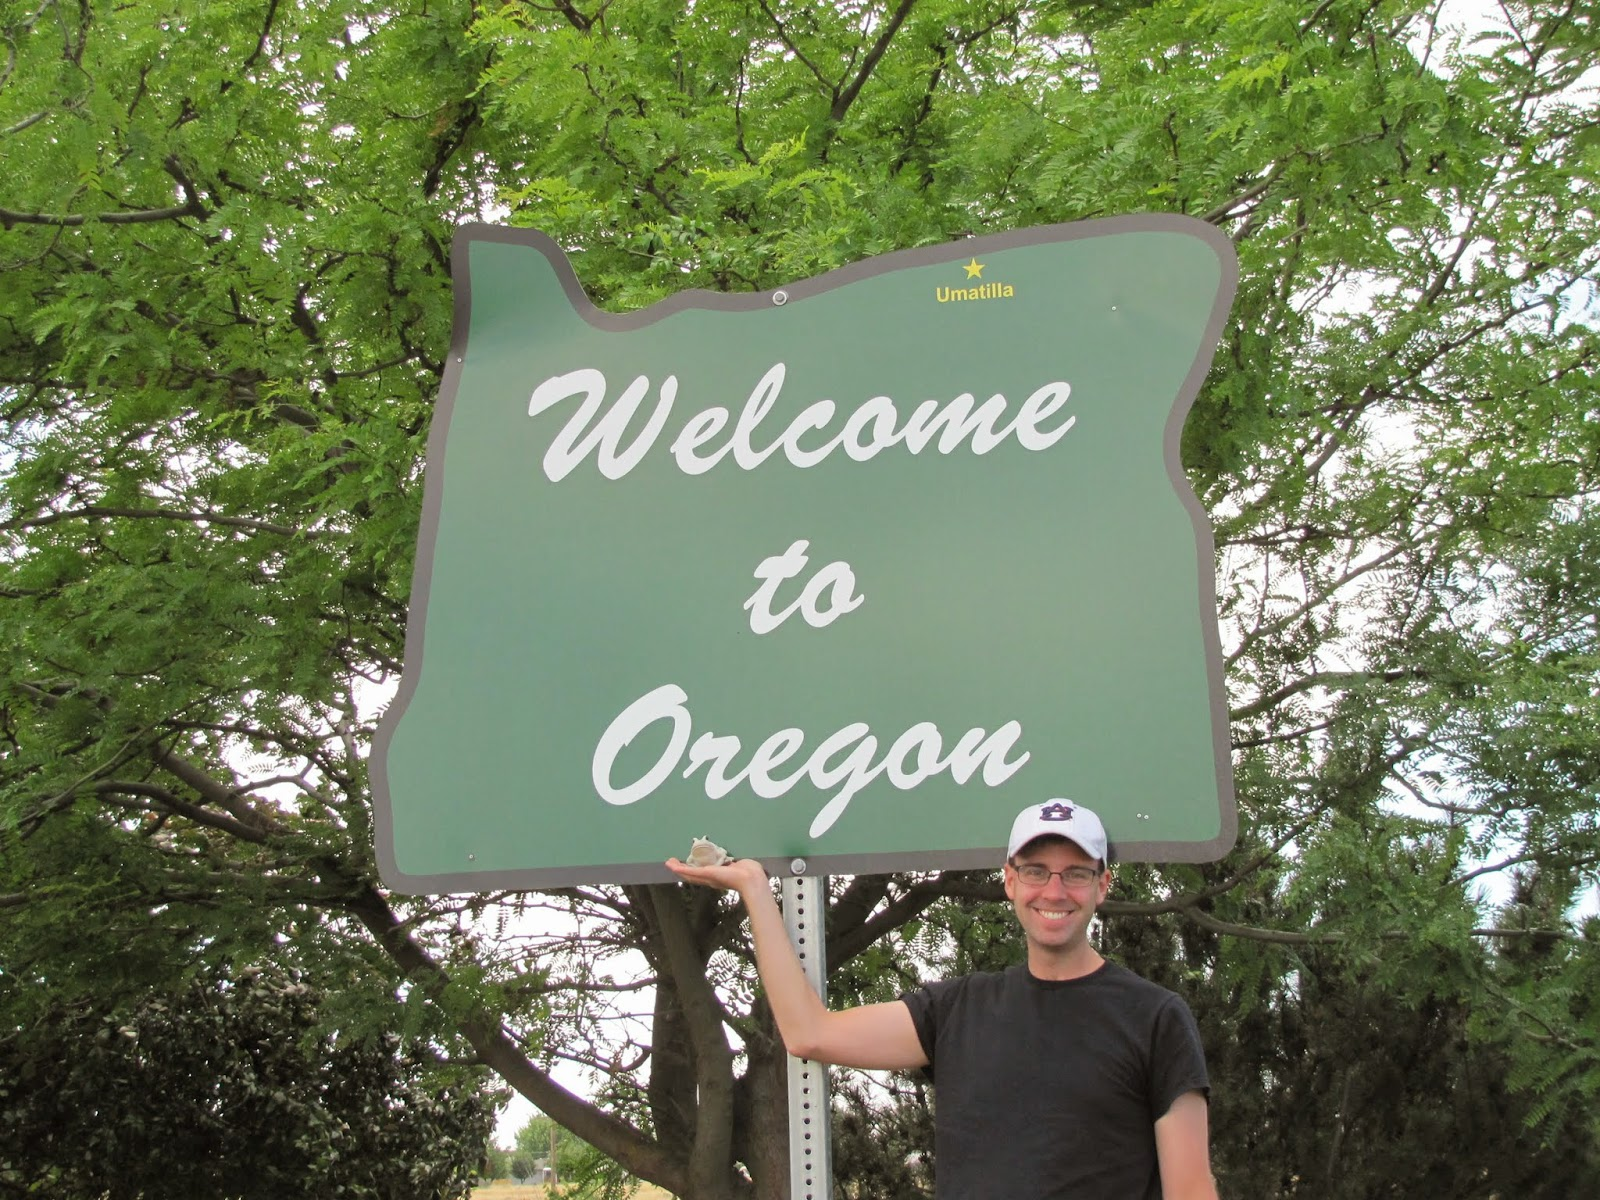 Cory and Frog pose with the Oregon welcome sign